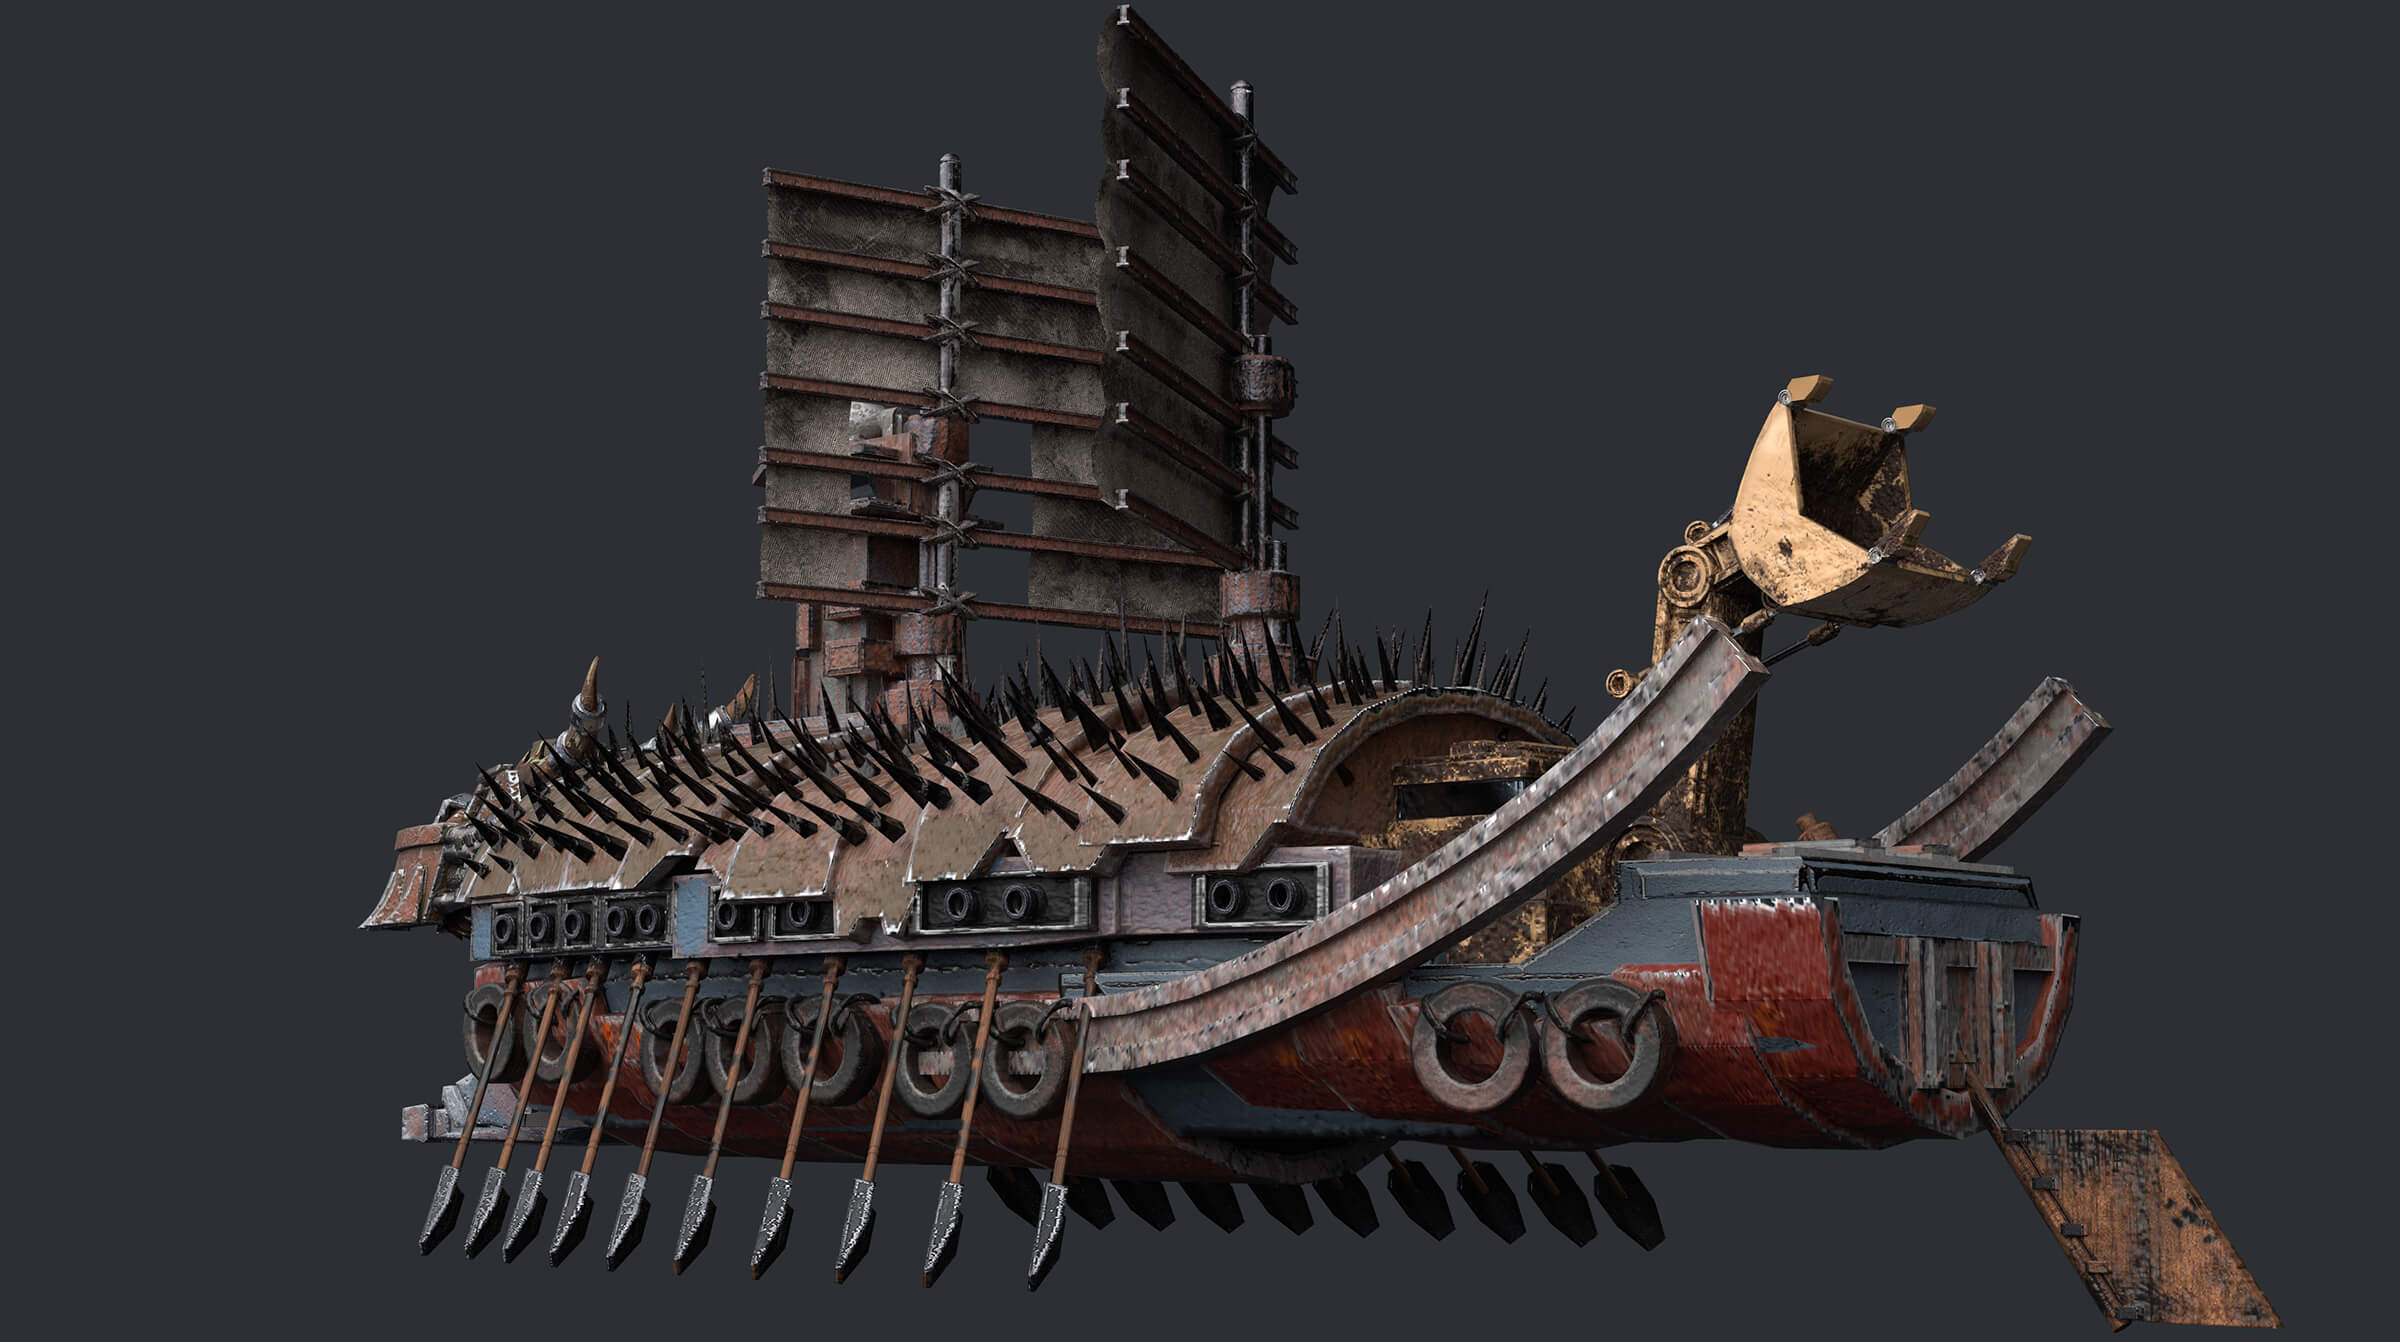 computer-generated 3D model of a ship with 20 oars and spikes on its roof